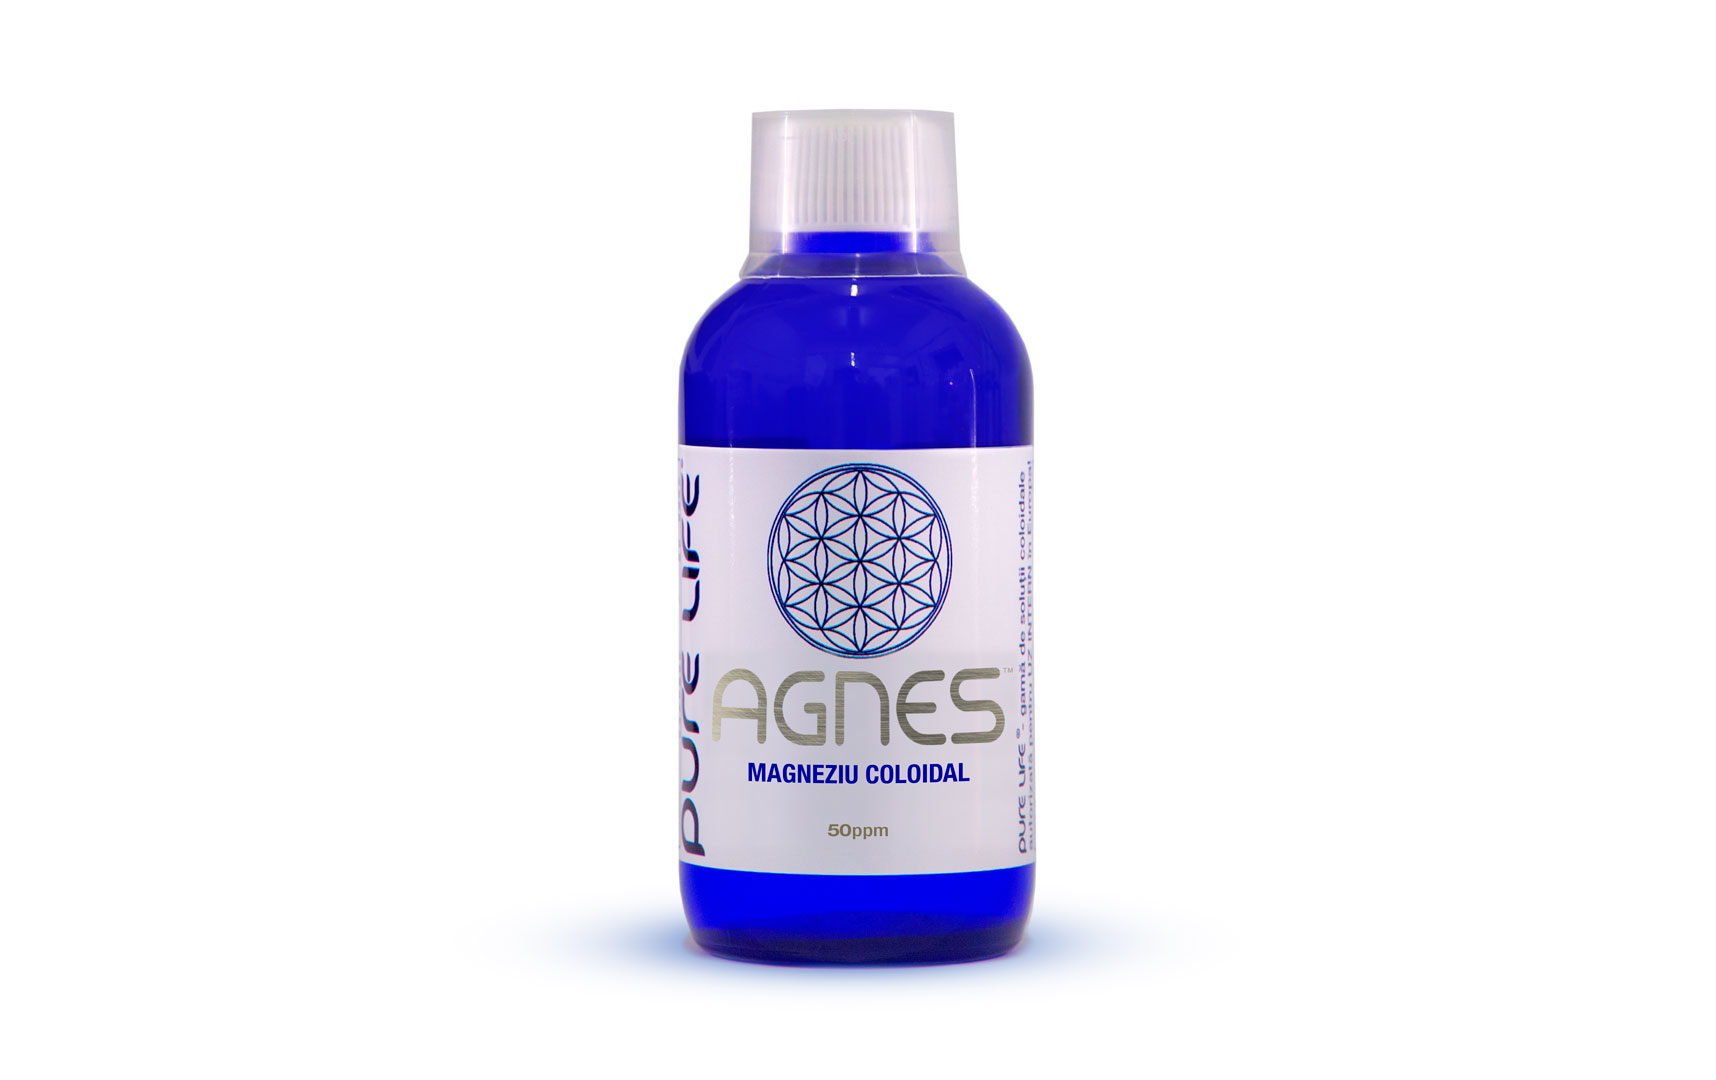 Agnes Magneziu coloidal 50ppm 240ml